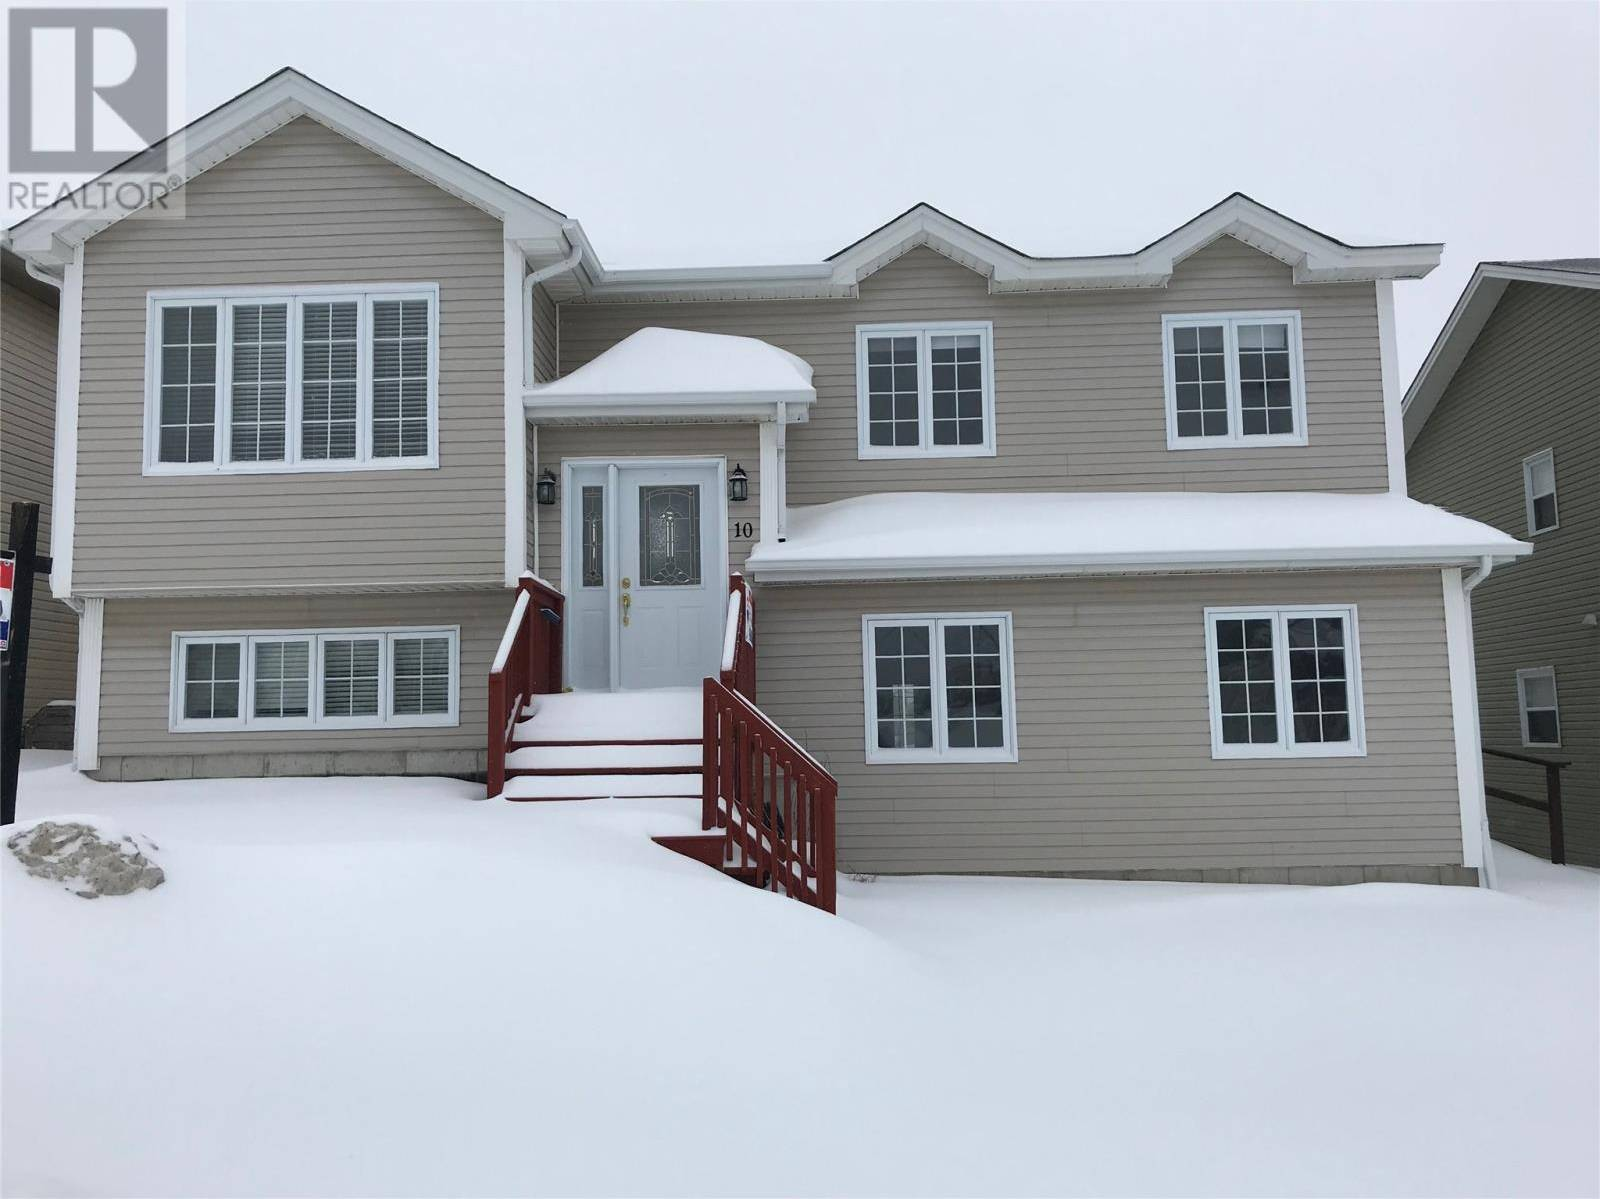 House for sale at 10 Petite Forte Dr St. John's Newfoundland - MLS: 1211623